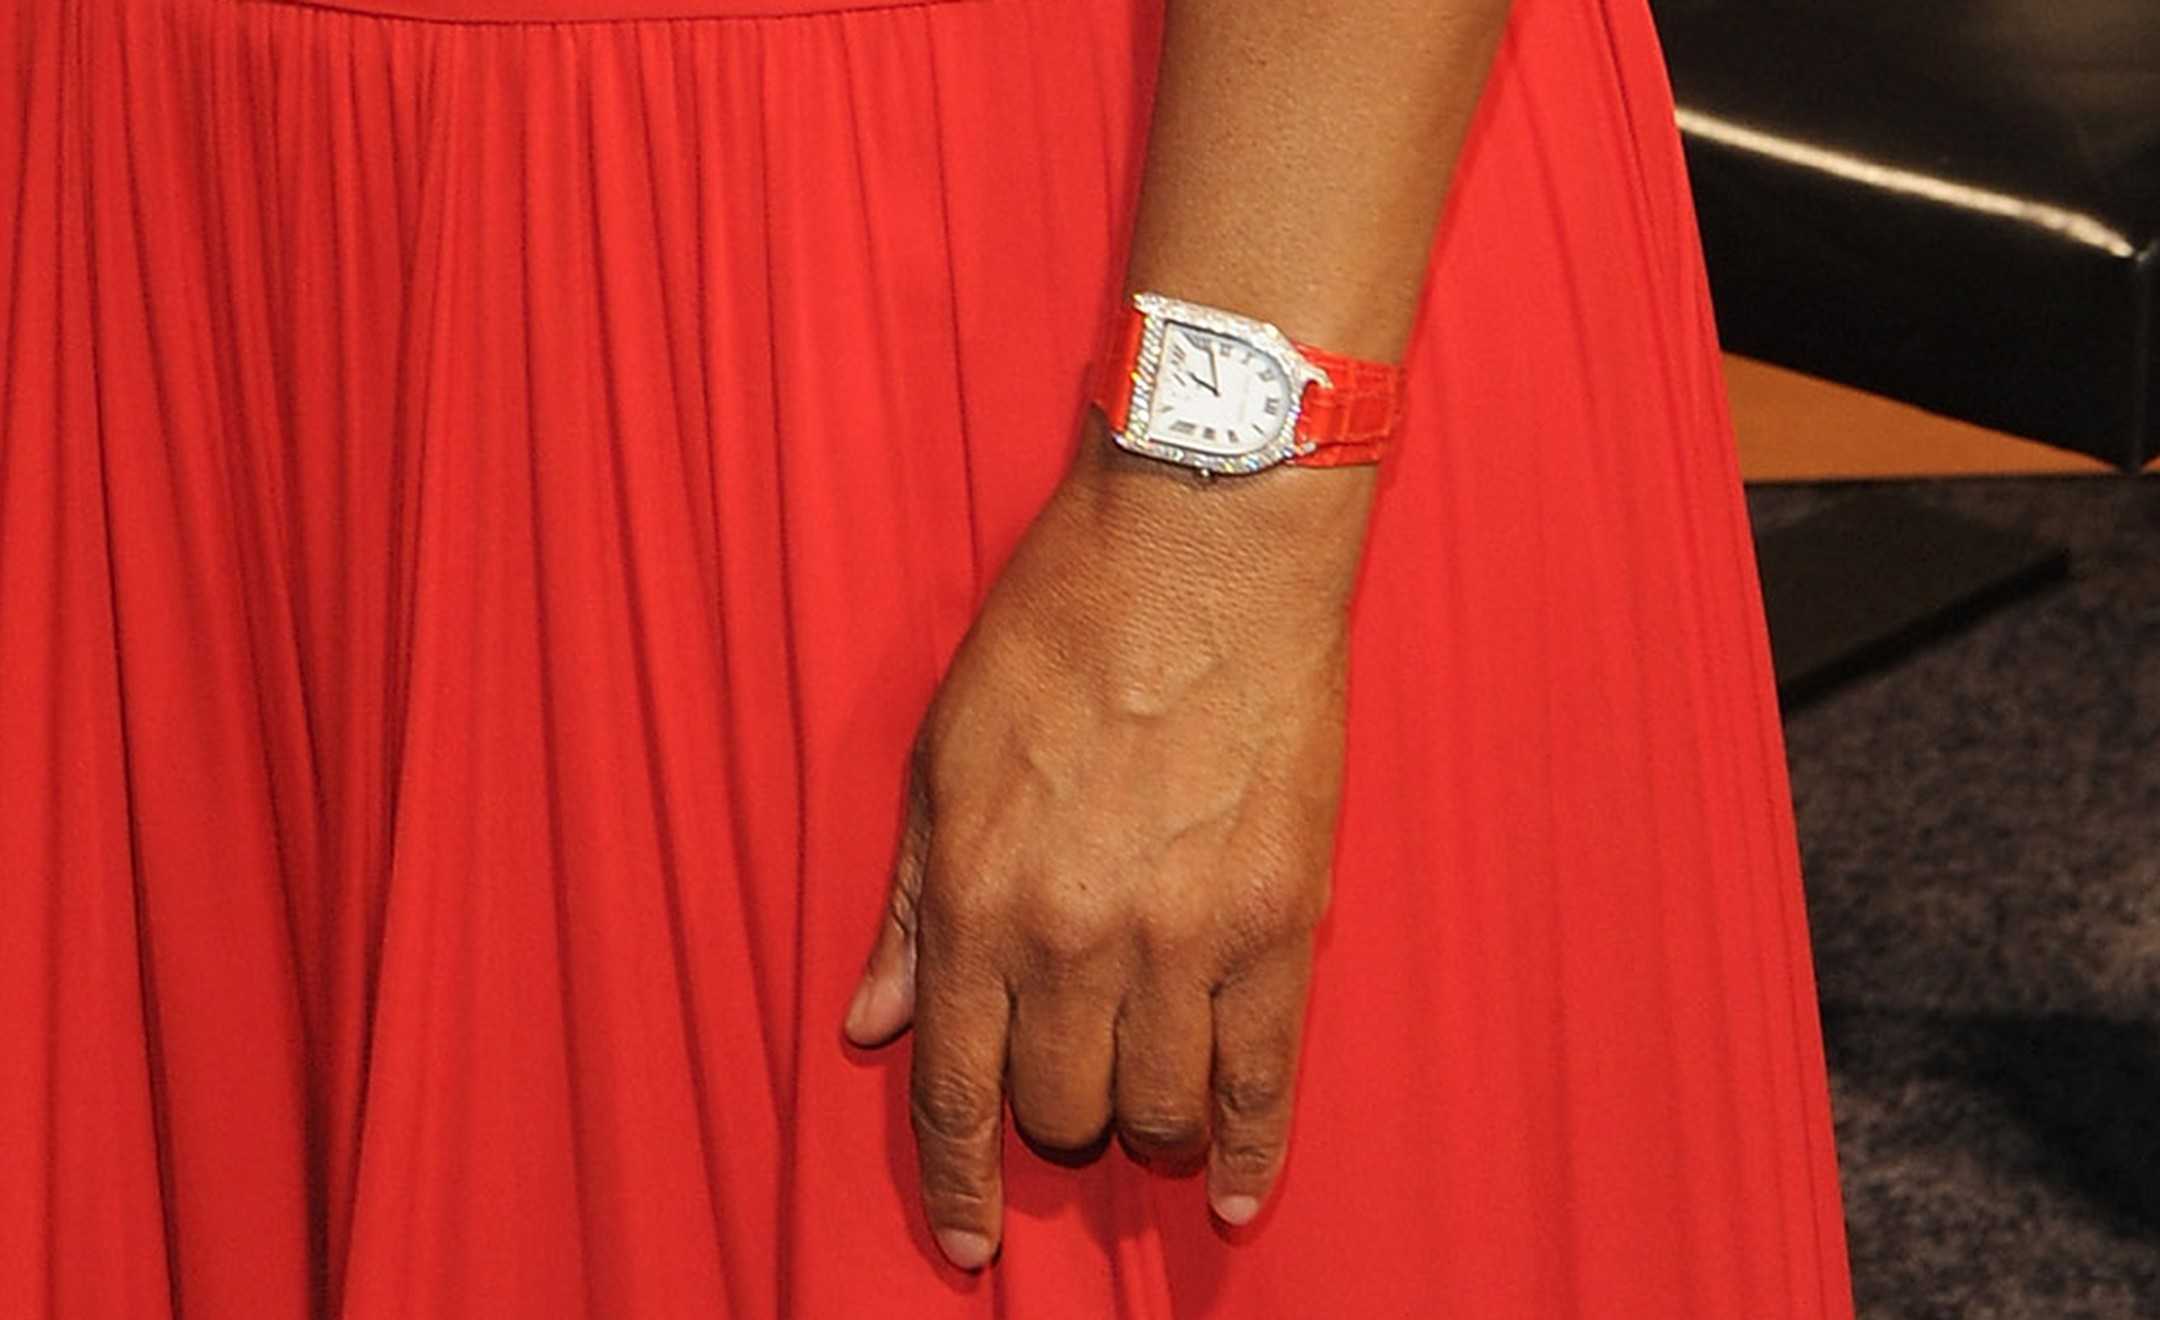 A closer look at the watch on Oprah's wrist reveals a Ralph Lauren Stirrup with diamonds and orange strap to match the dress.